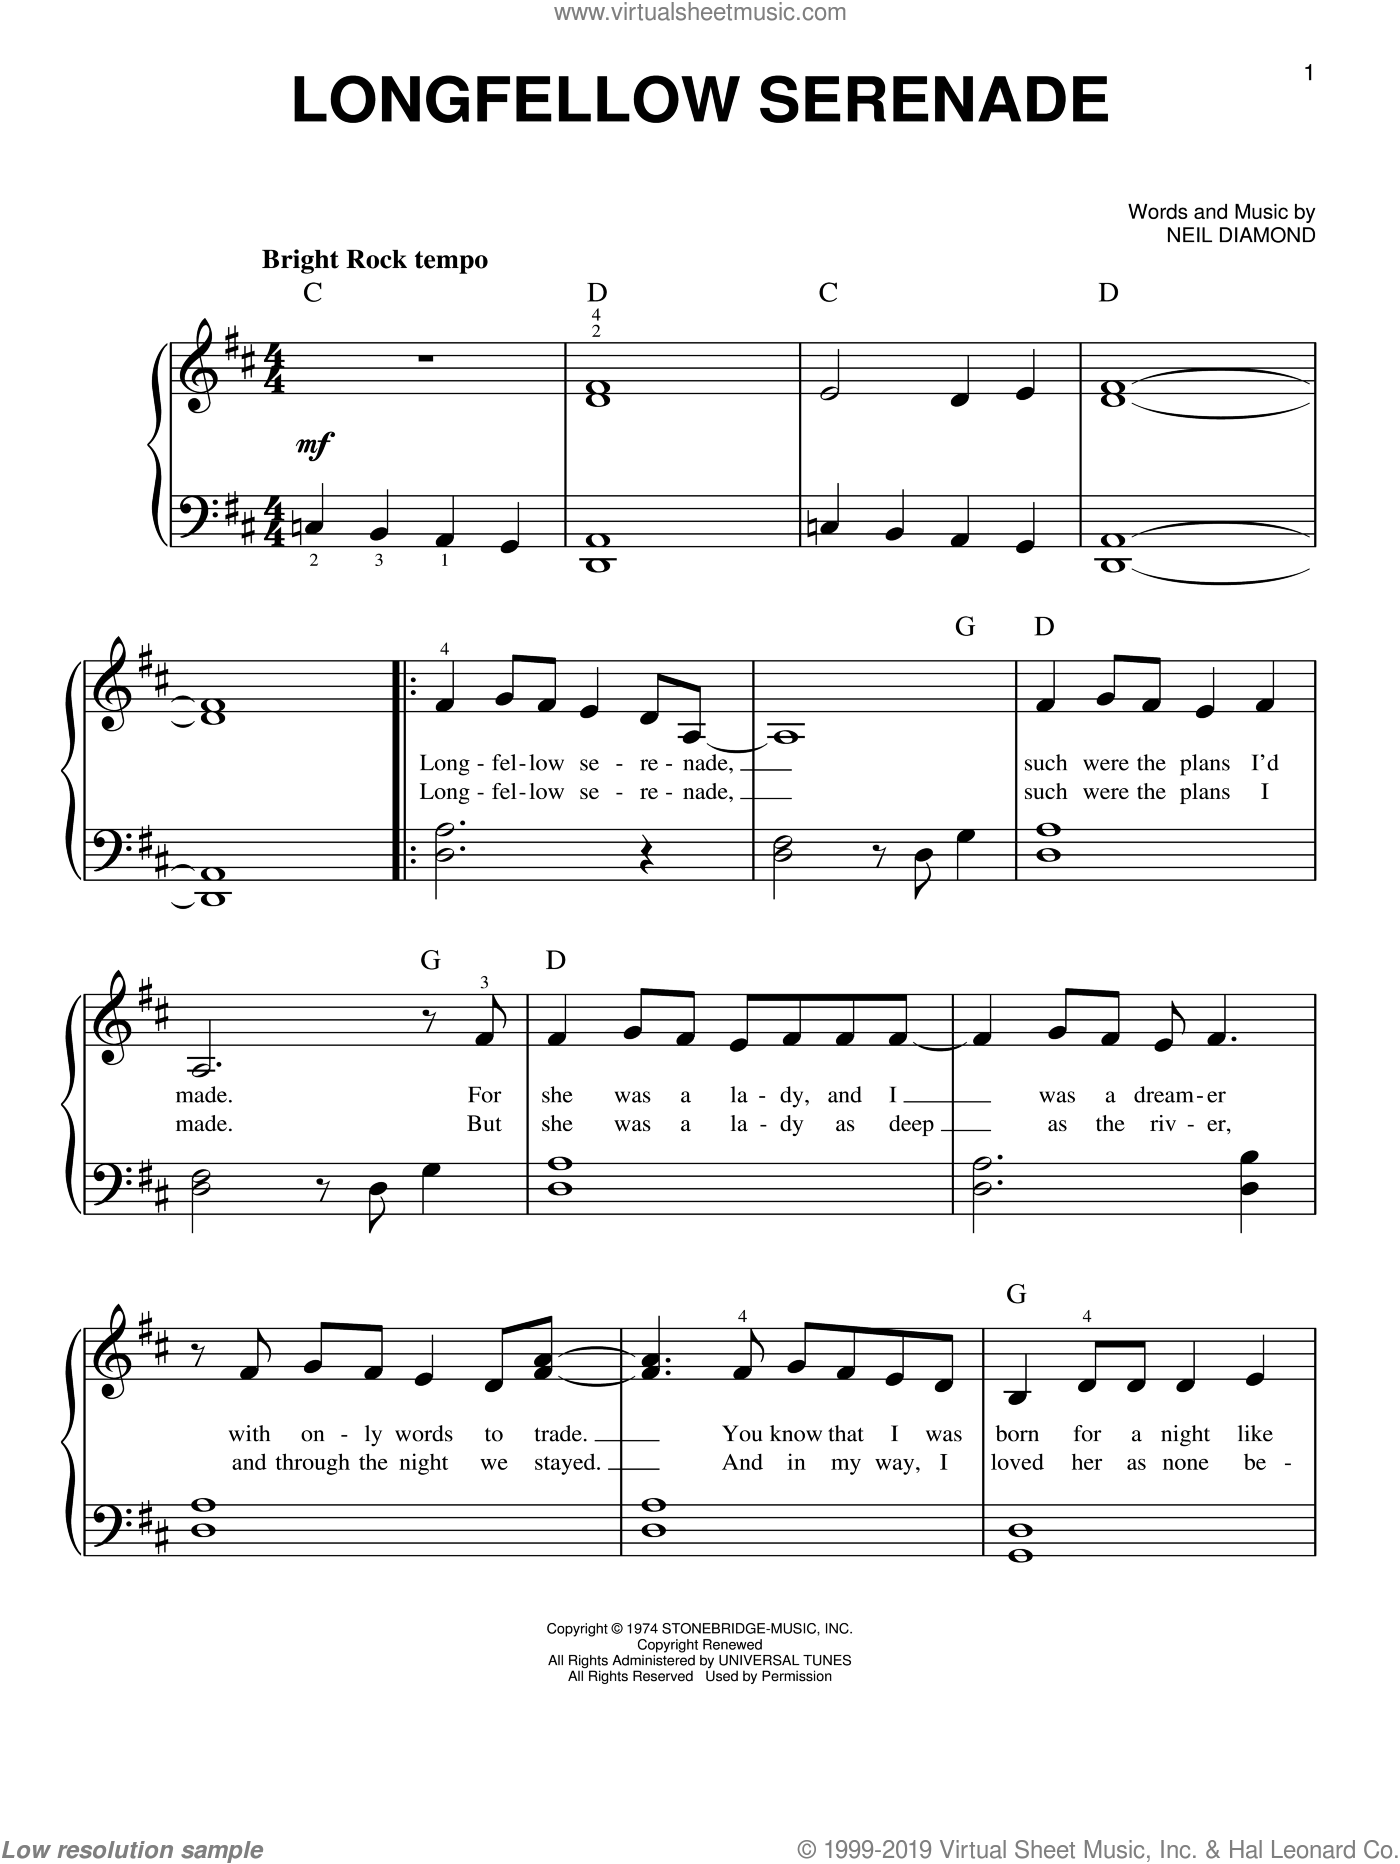 Longfellow Serenade sheet music for piano solo by Neil Diamond, easy skill level